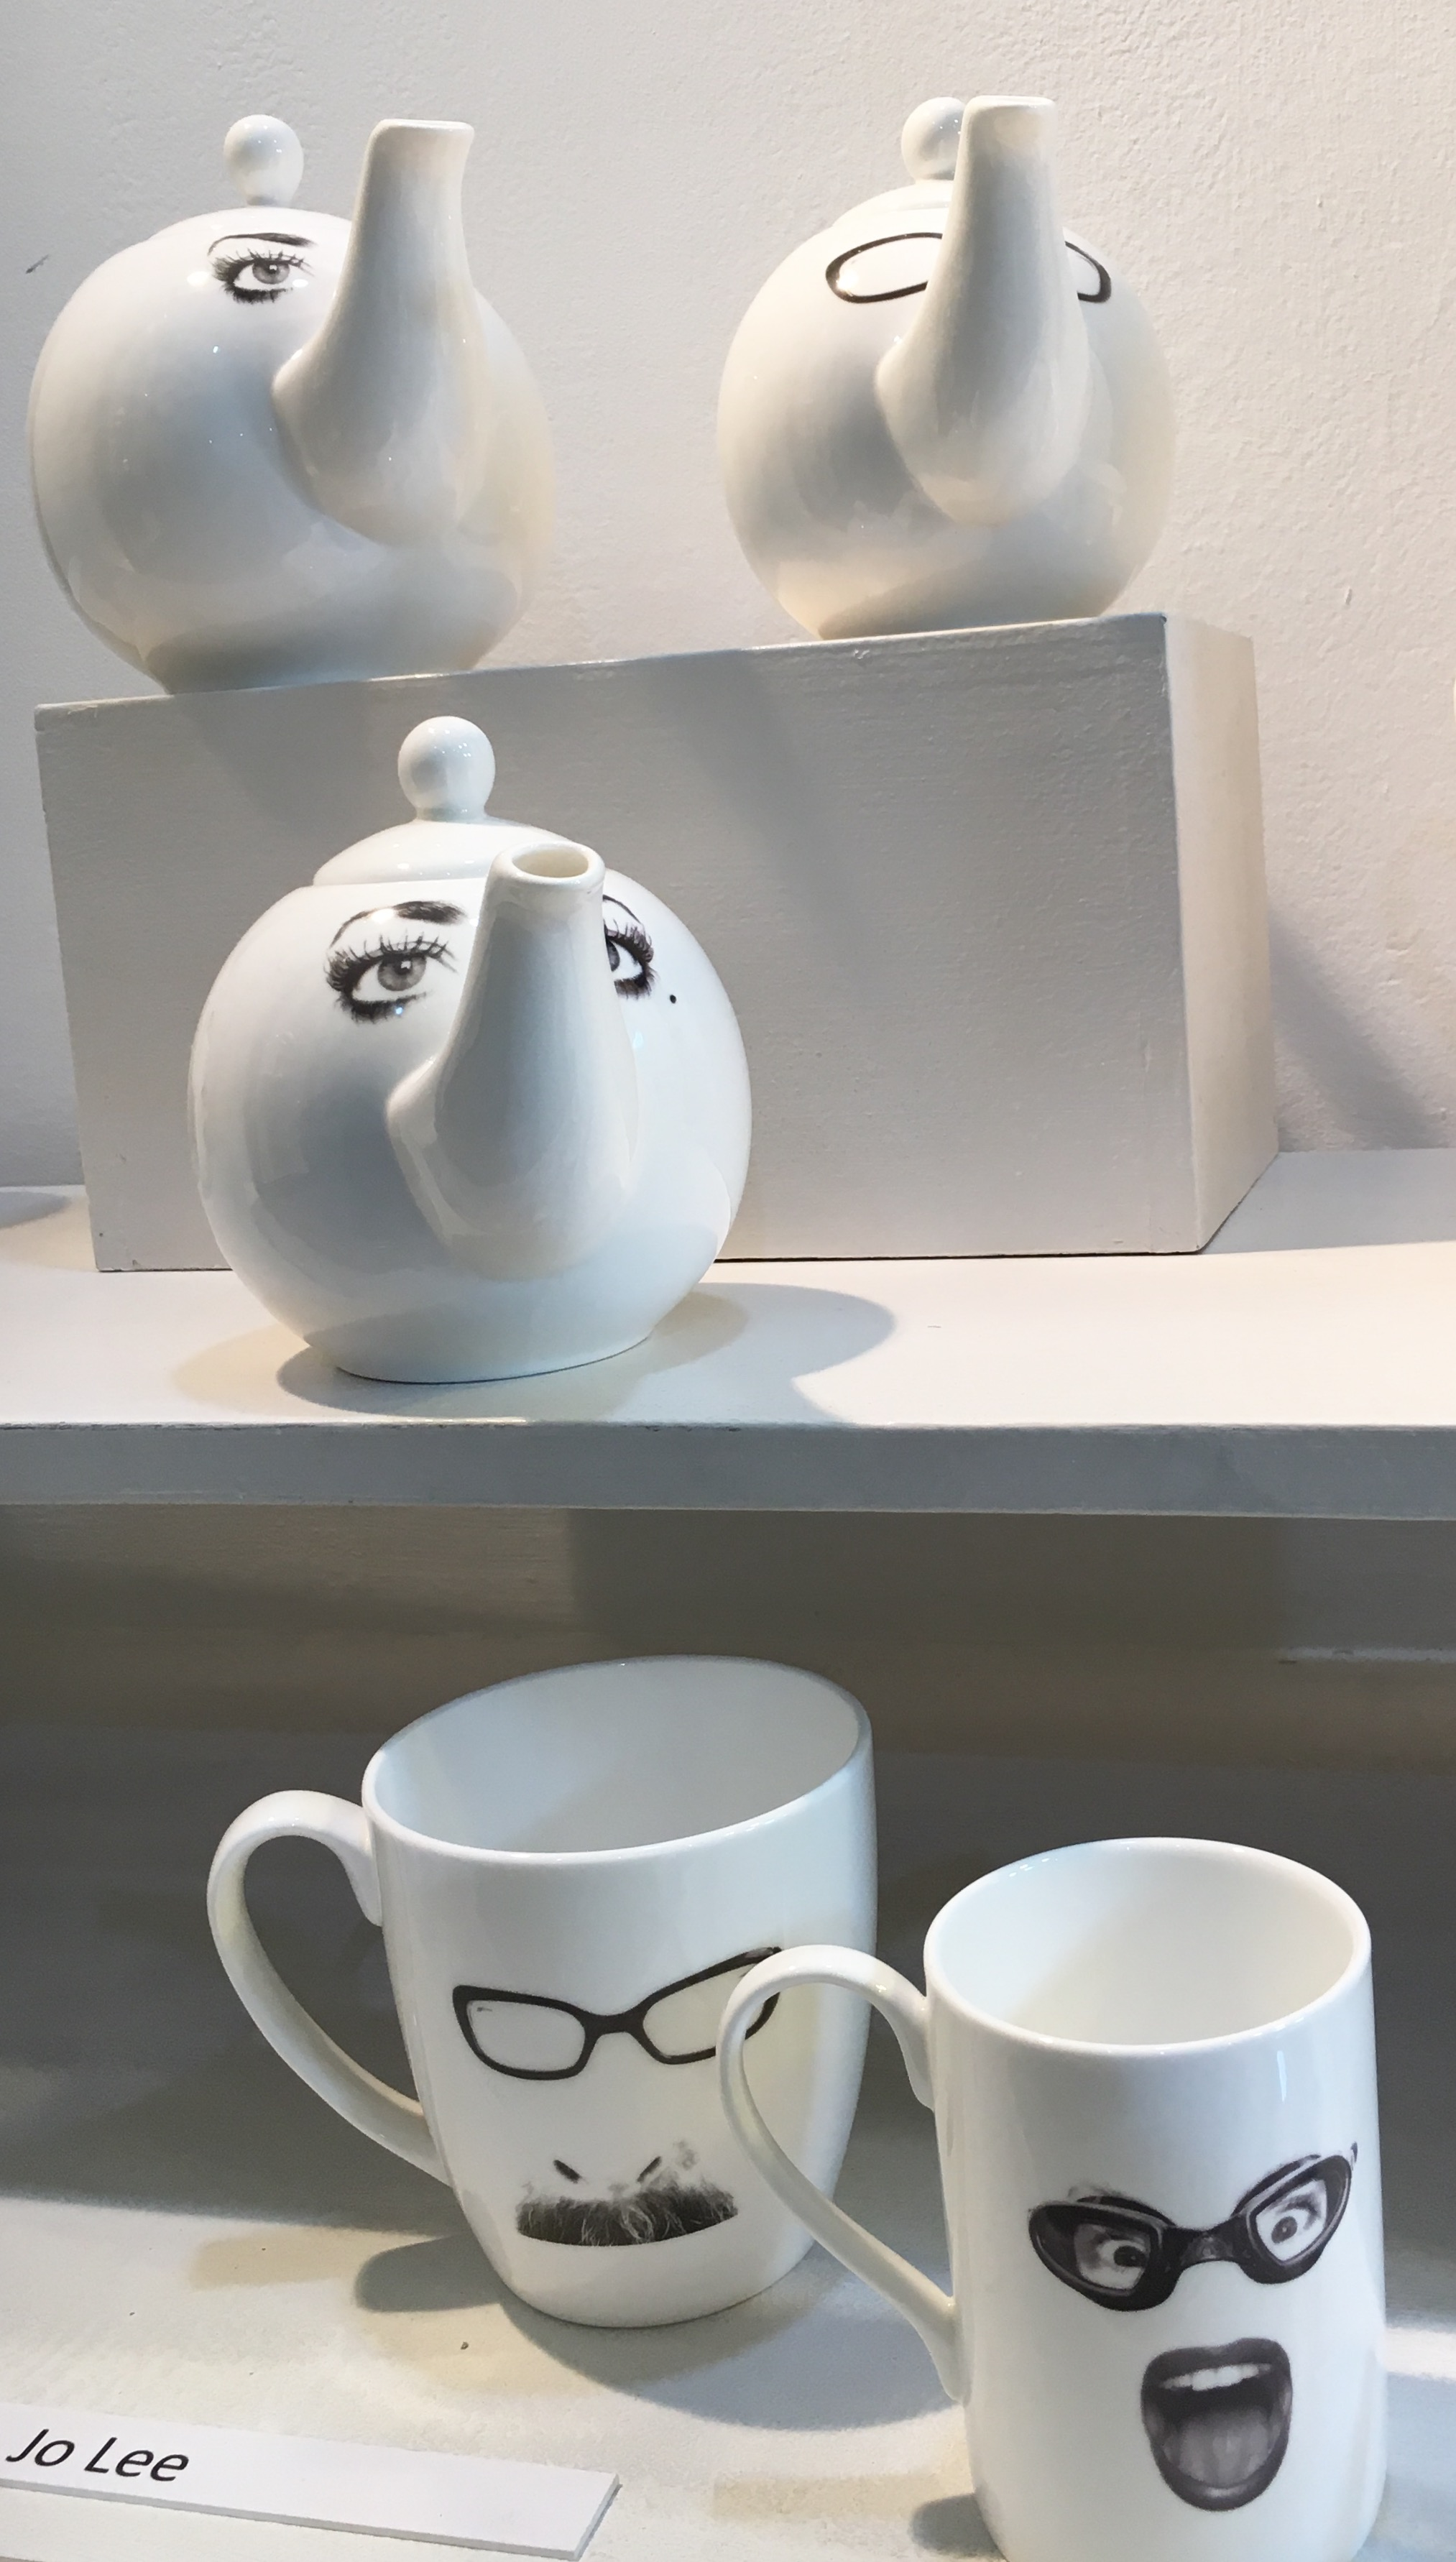 Teabods and mugs